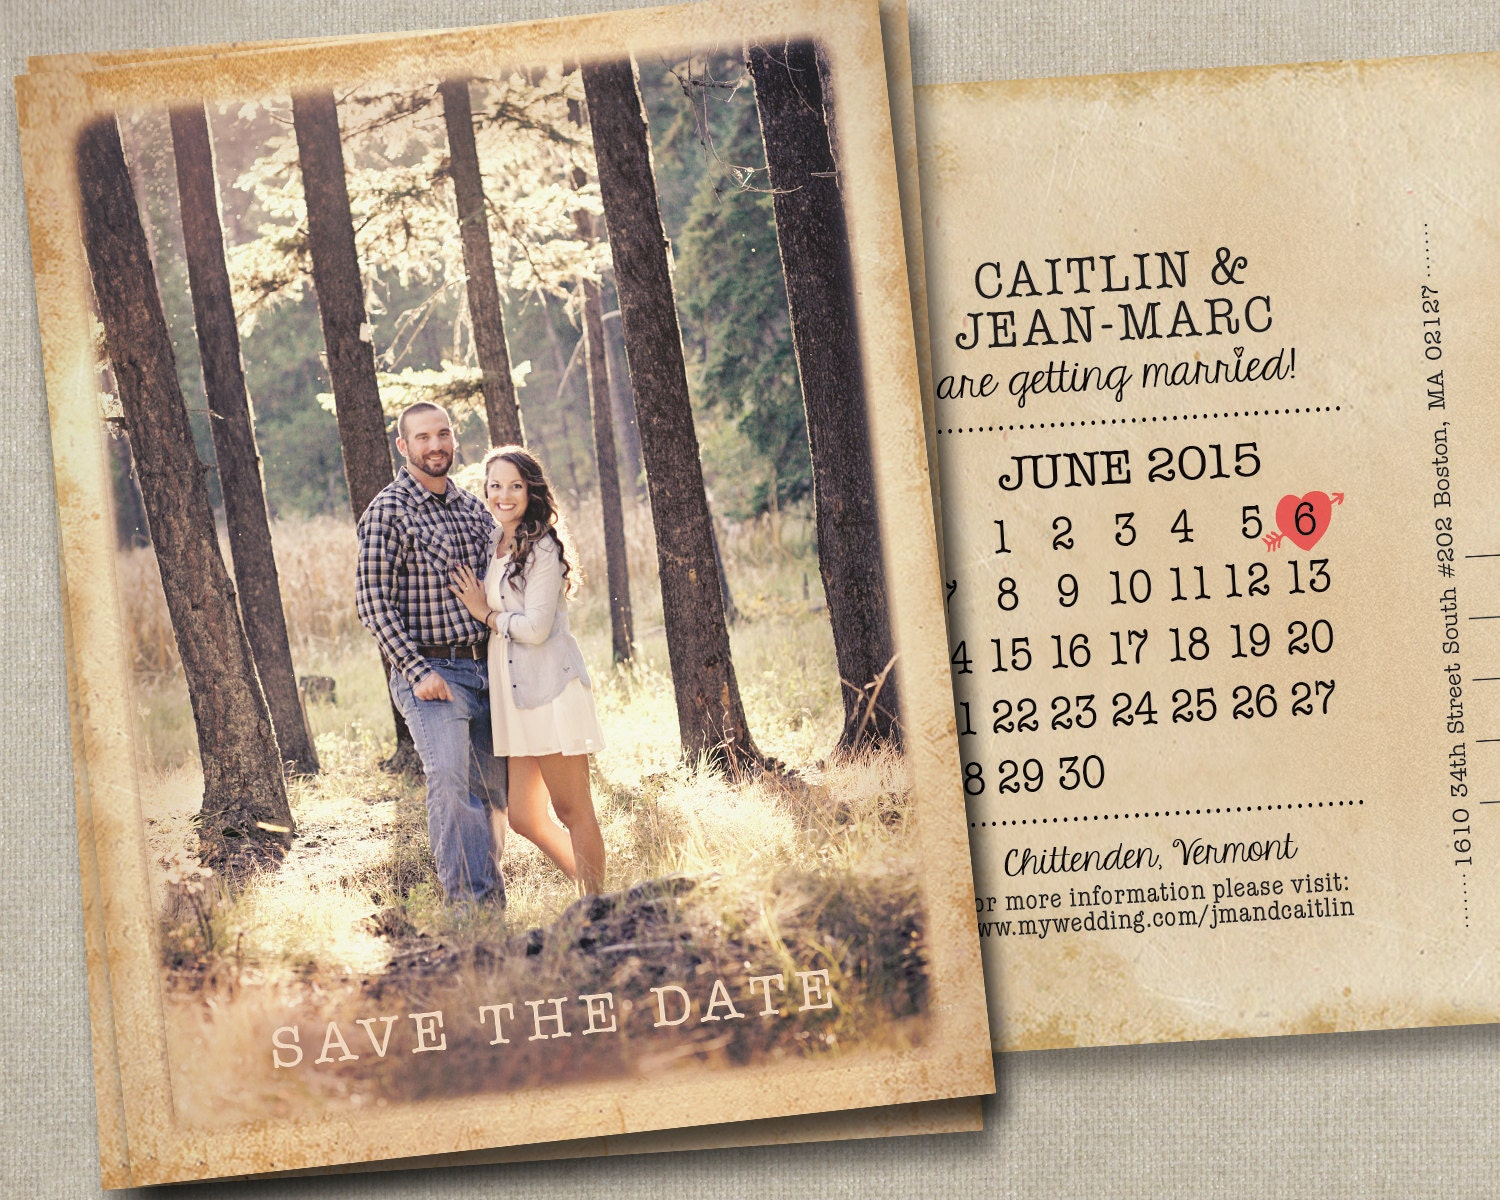 Wedding Save The Date Postcards: Wedding Save The Date Dates Photo Magnets Postcards Cards